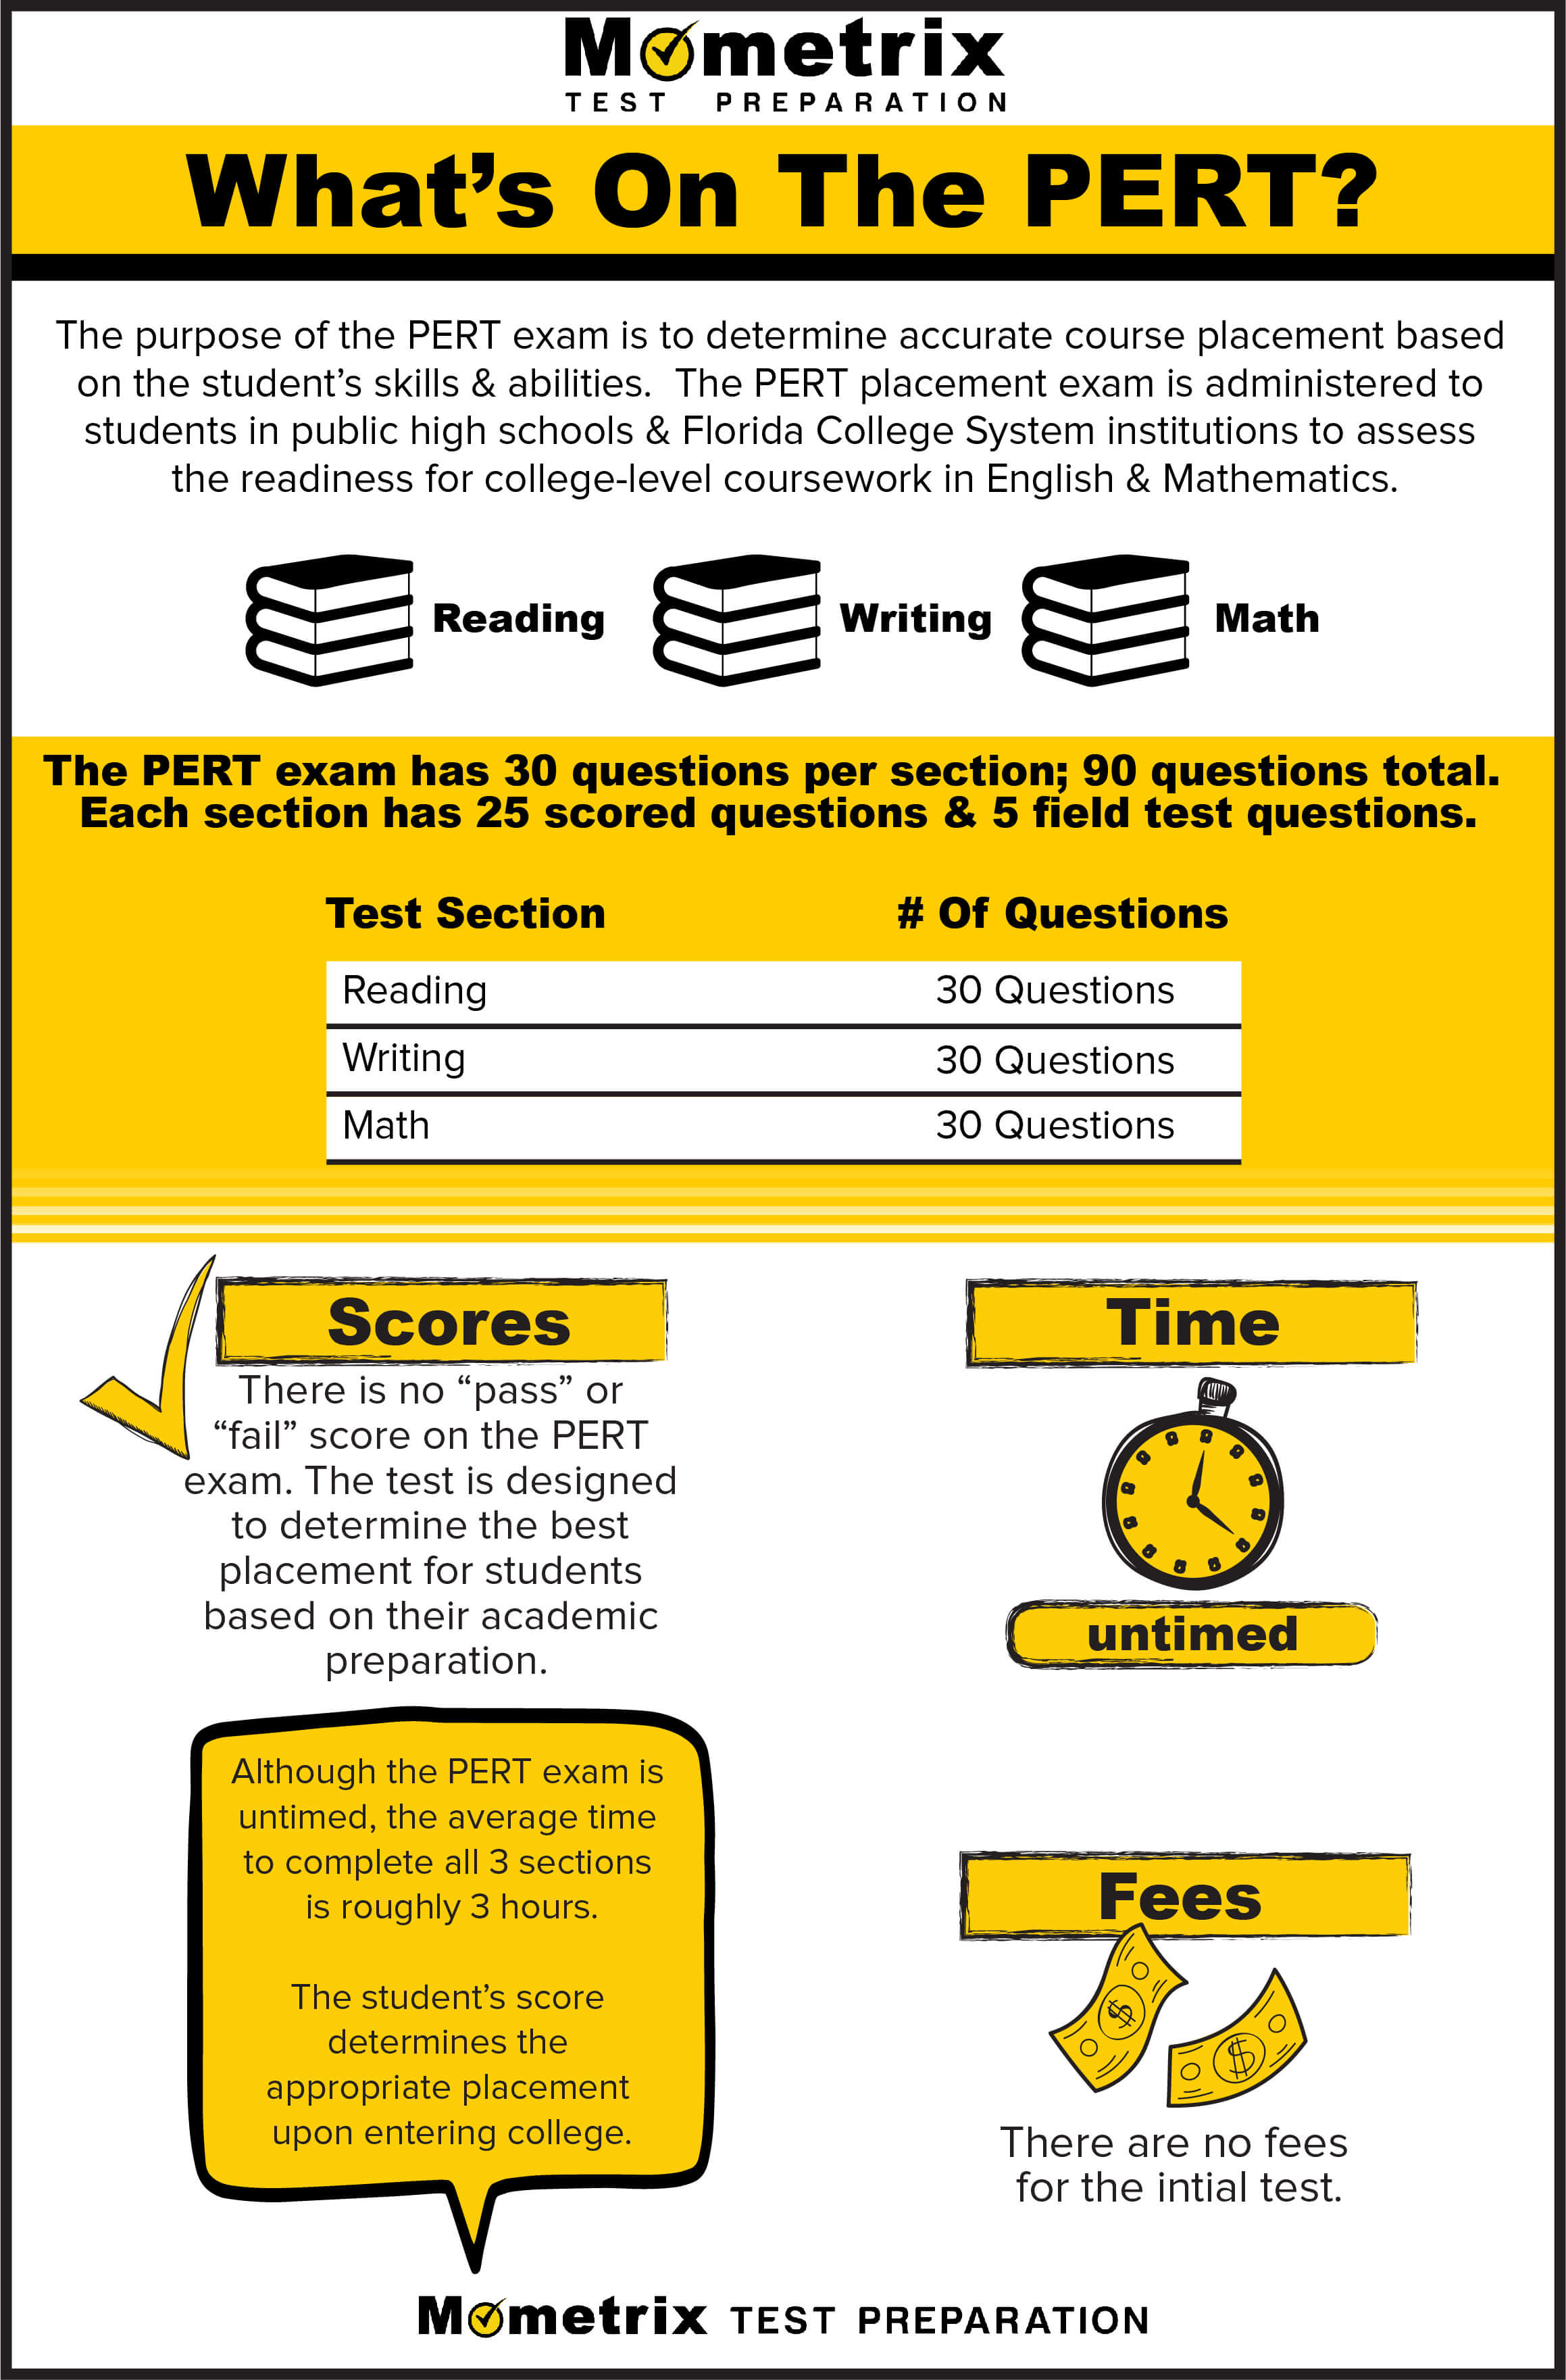 Infographic explaining what's on the PERT exam